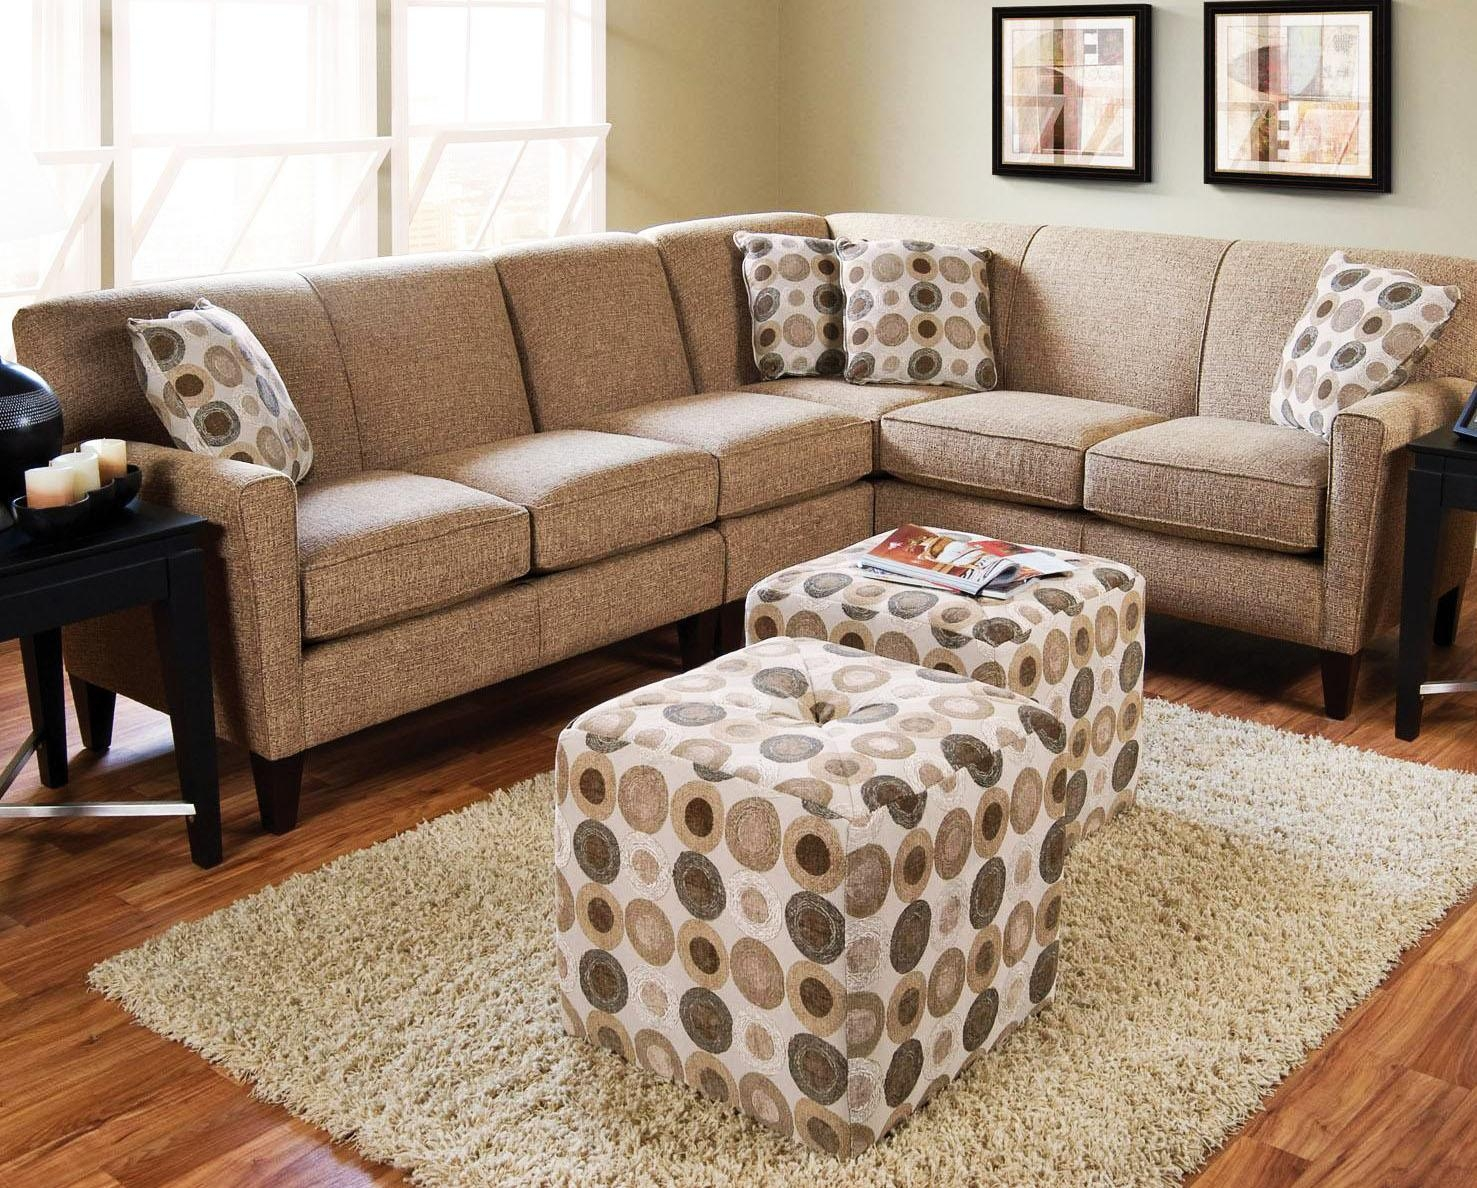 How To Choose Sectional Sofas For Small Spaces | Homefurniture Regarding Sectional Small Spaces (View 20 of 20)